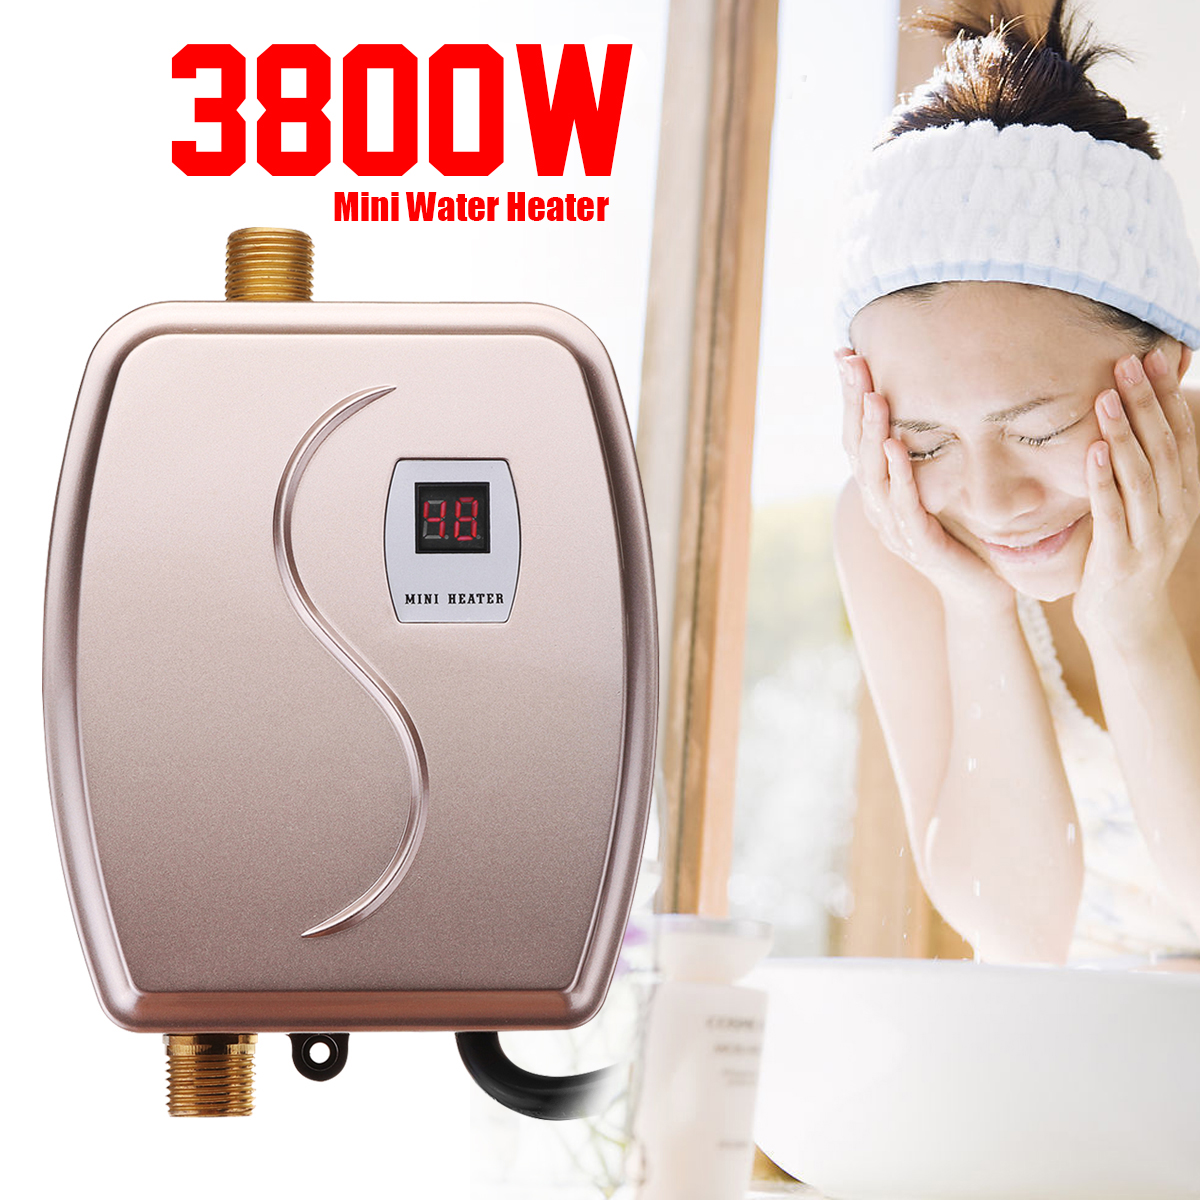 Hot Water Heater Faucet kitchen Heating 3800W Mini Tankless Instant Thermostat US EU Plug Intelligent Energy